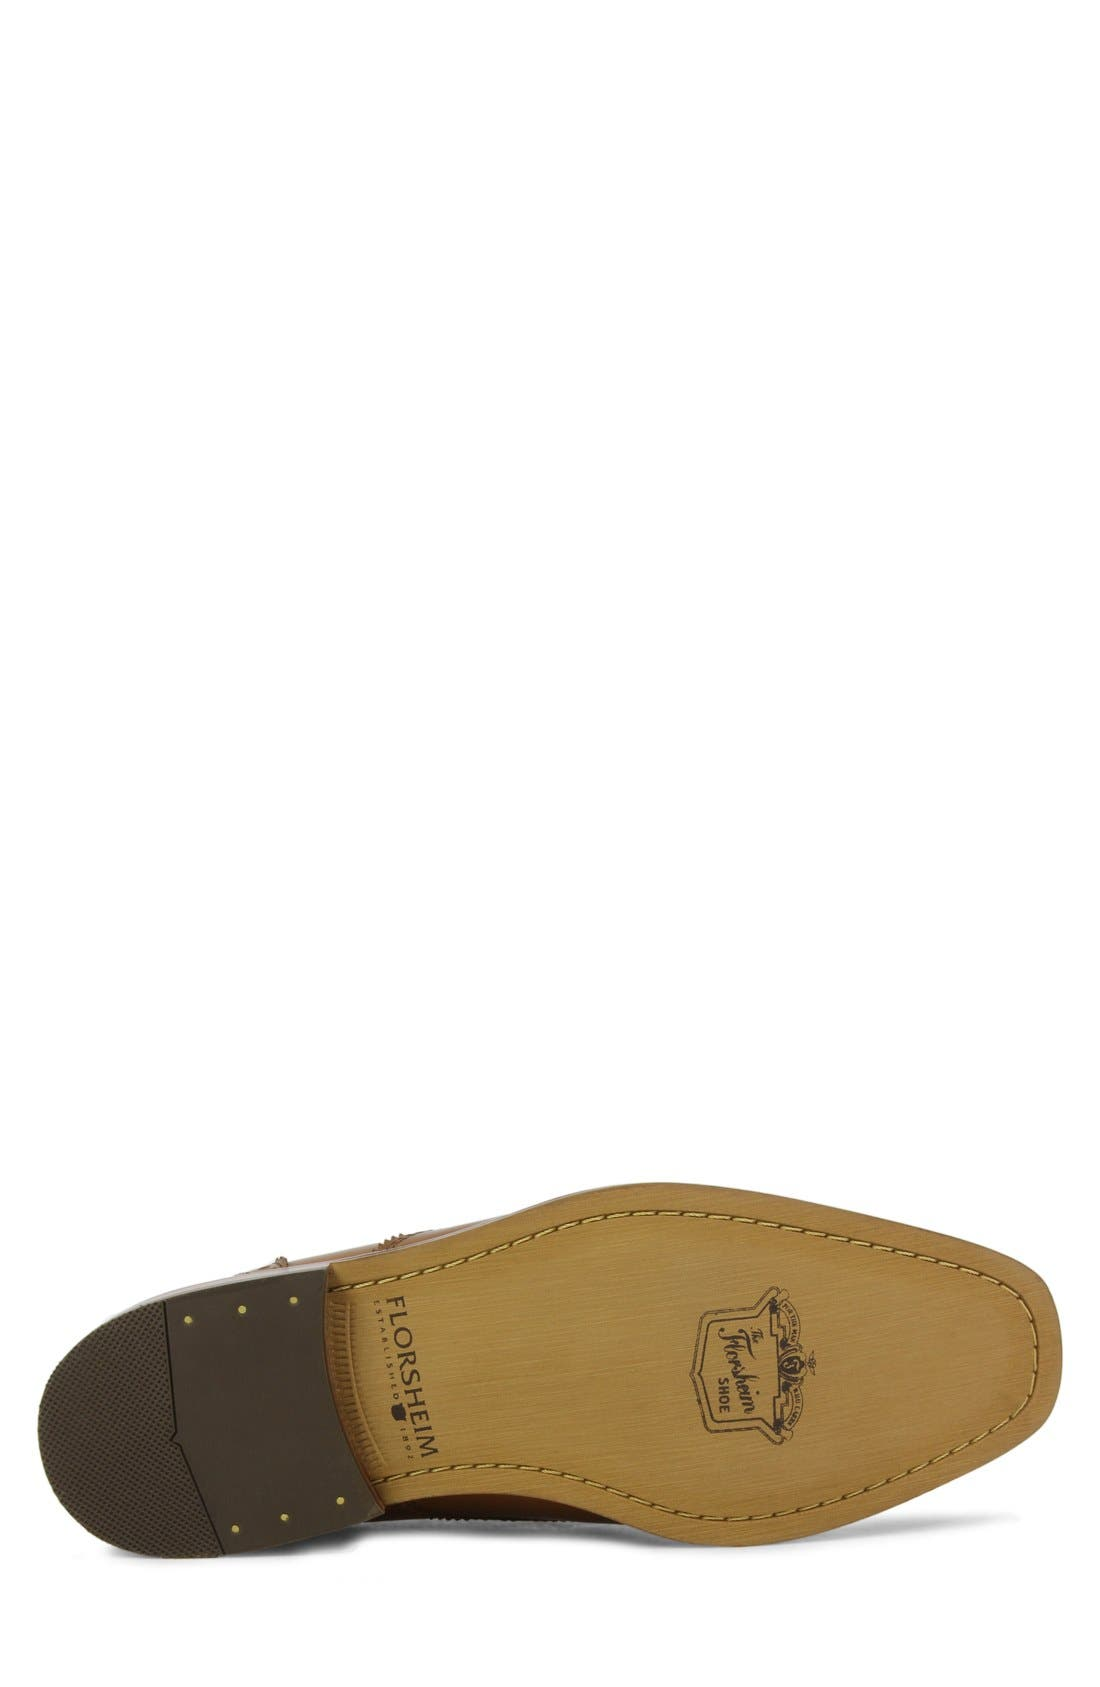 Alternate Image 2  - Florsheim 'Castellano' Venetian Loafer (Men)